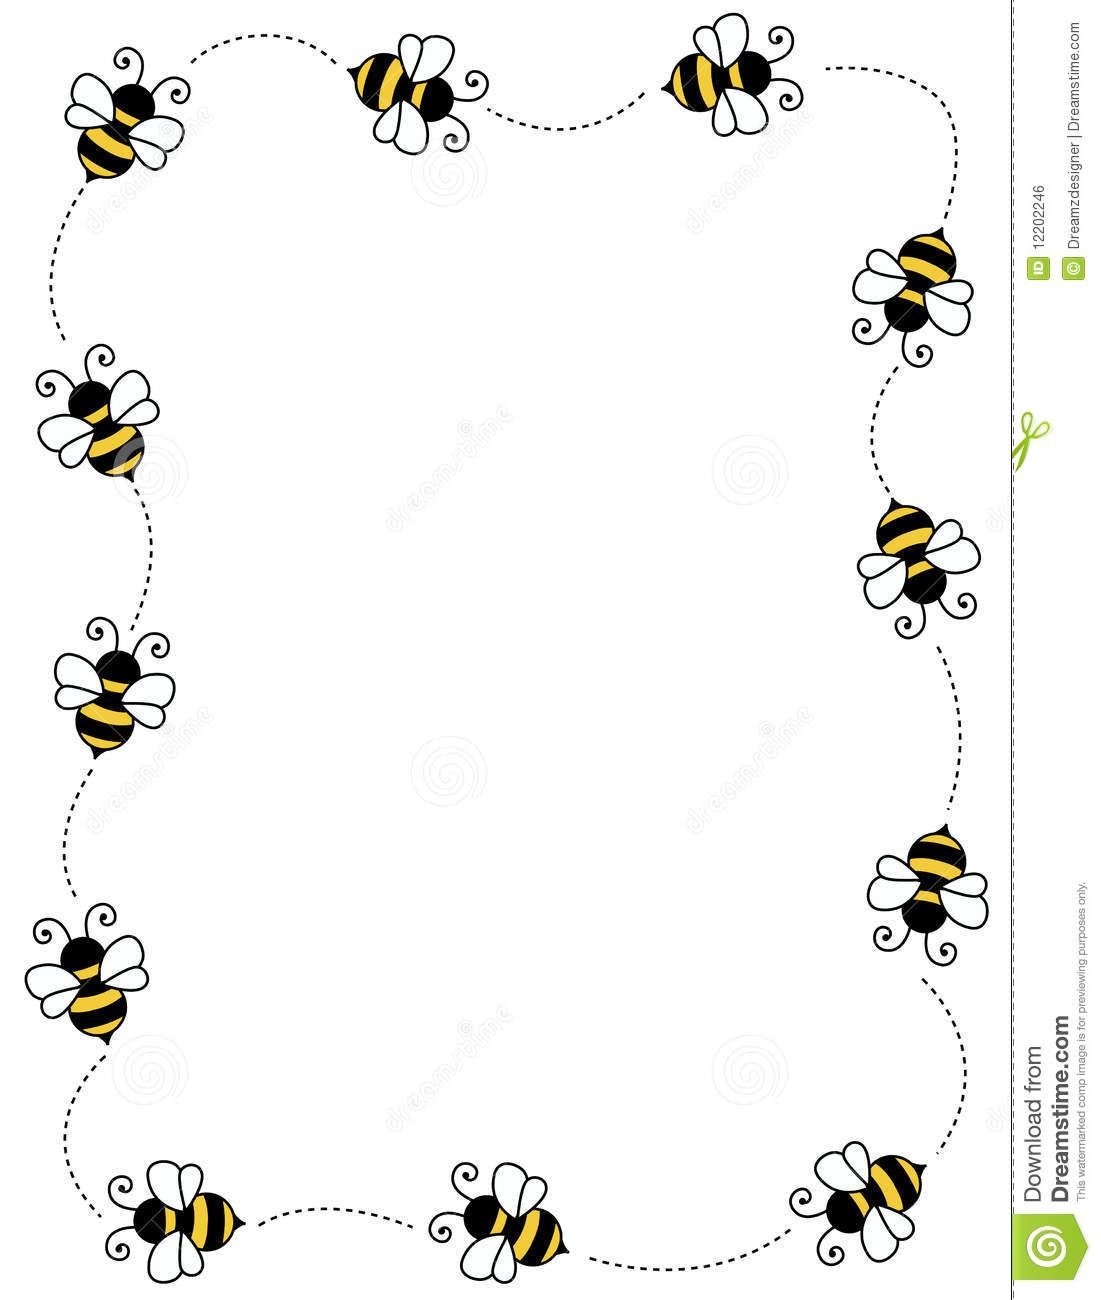 clip art frames with bumble bees.